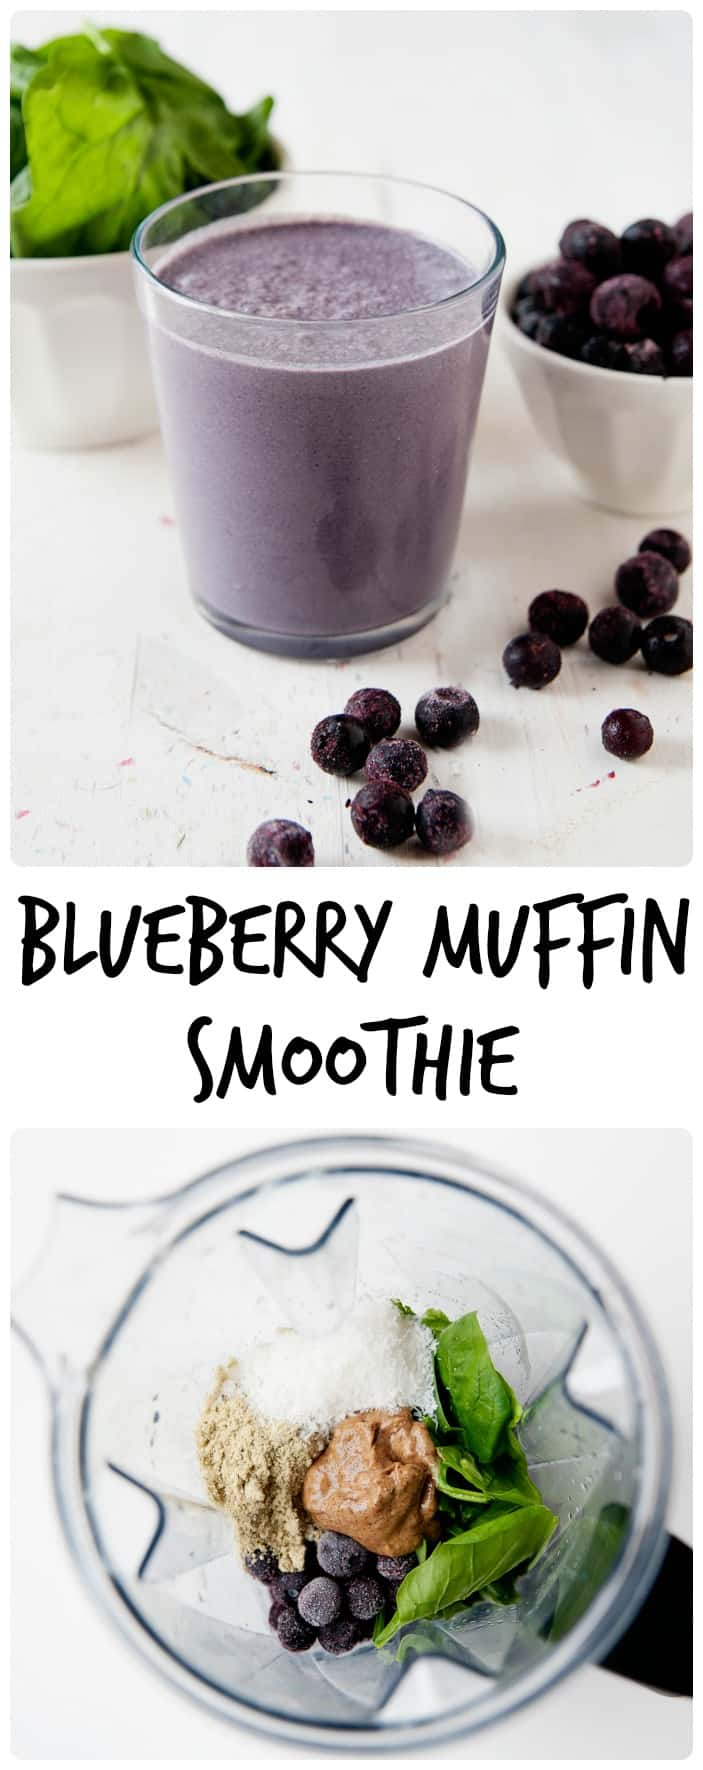 What if I told you I can make spinach taste like dessert? You are not going to believe me until you try this blueberry muffin green smoothie recipe!